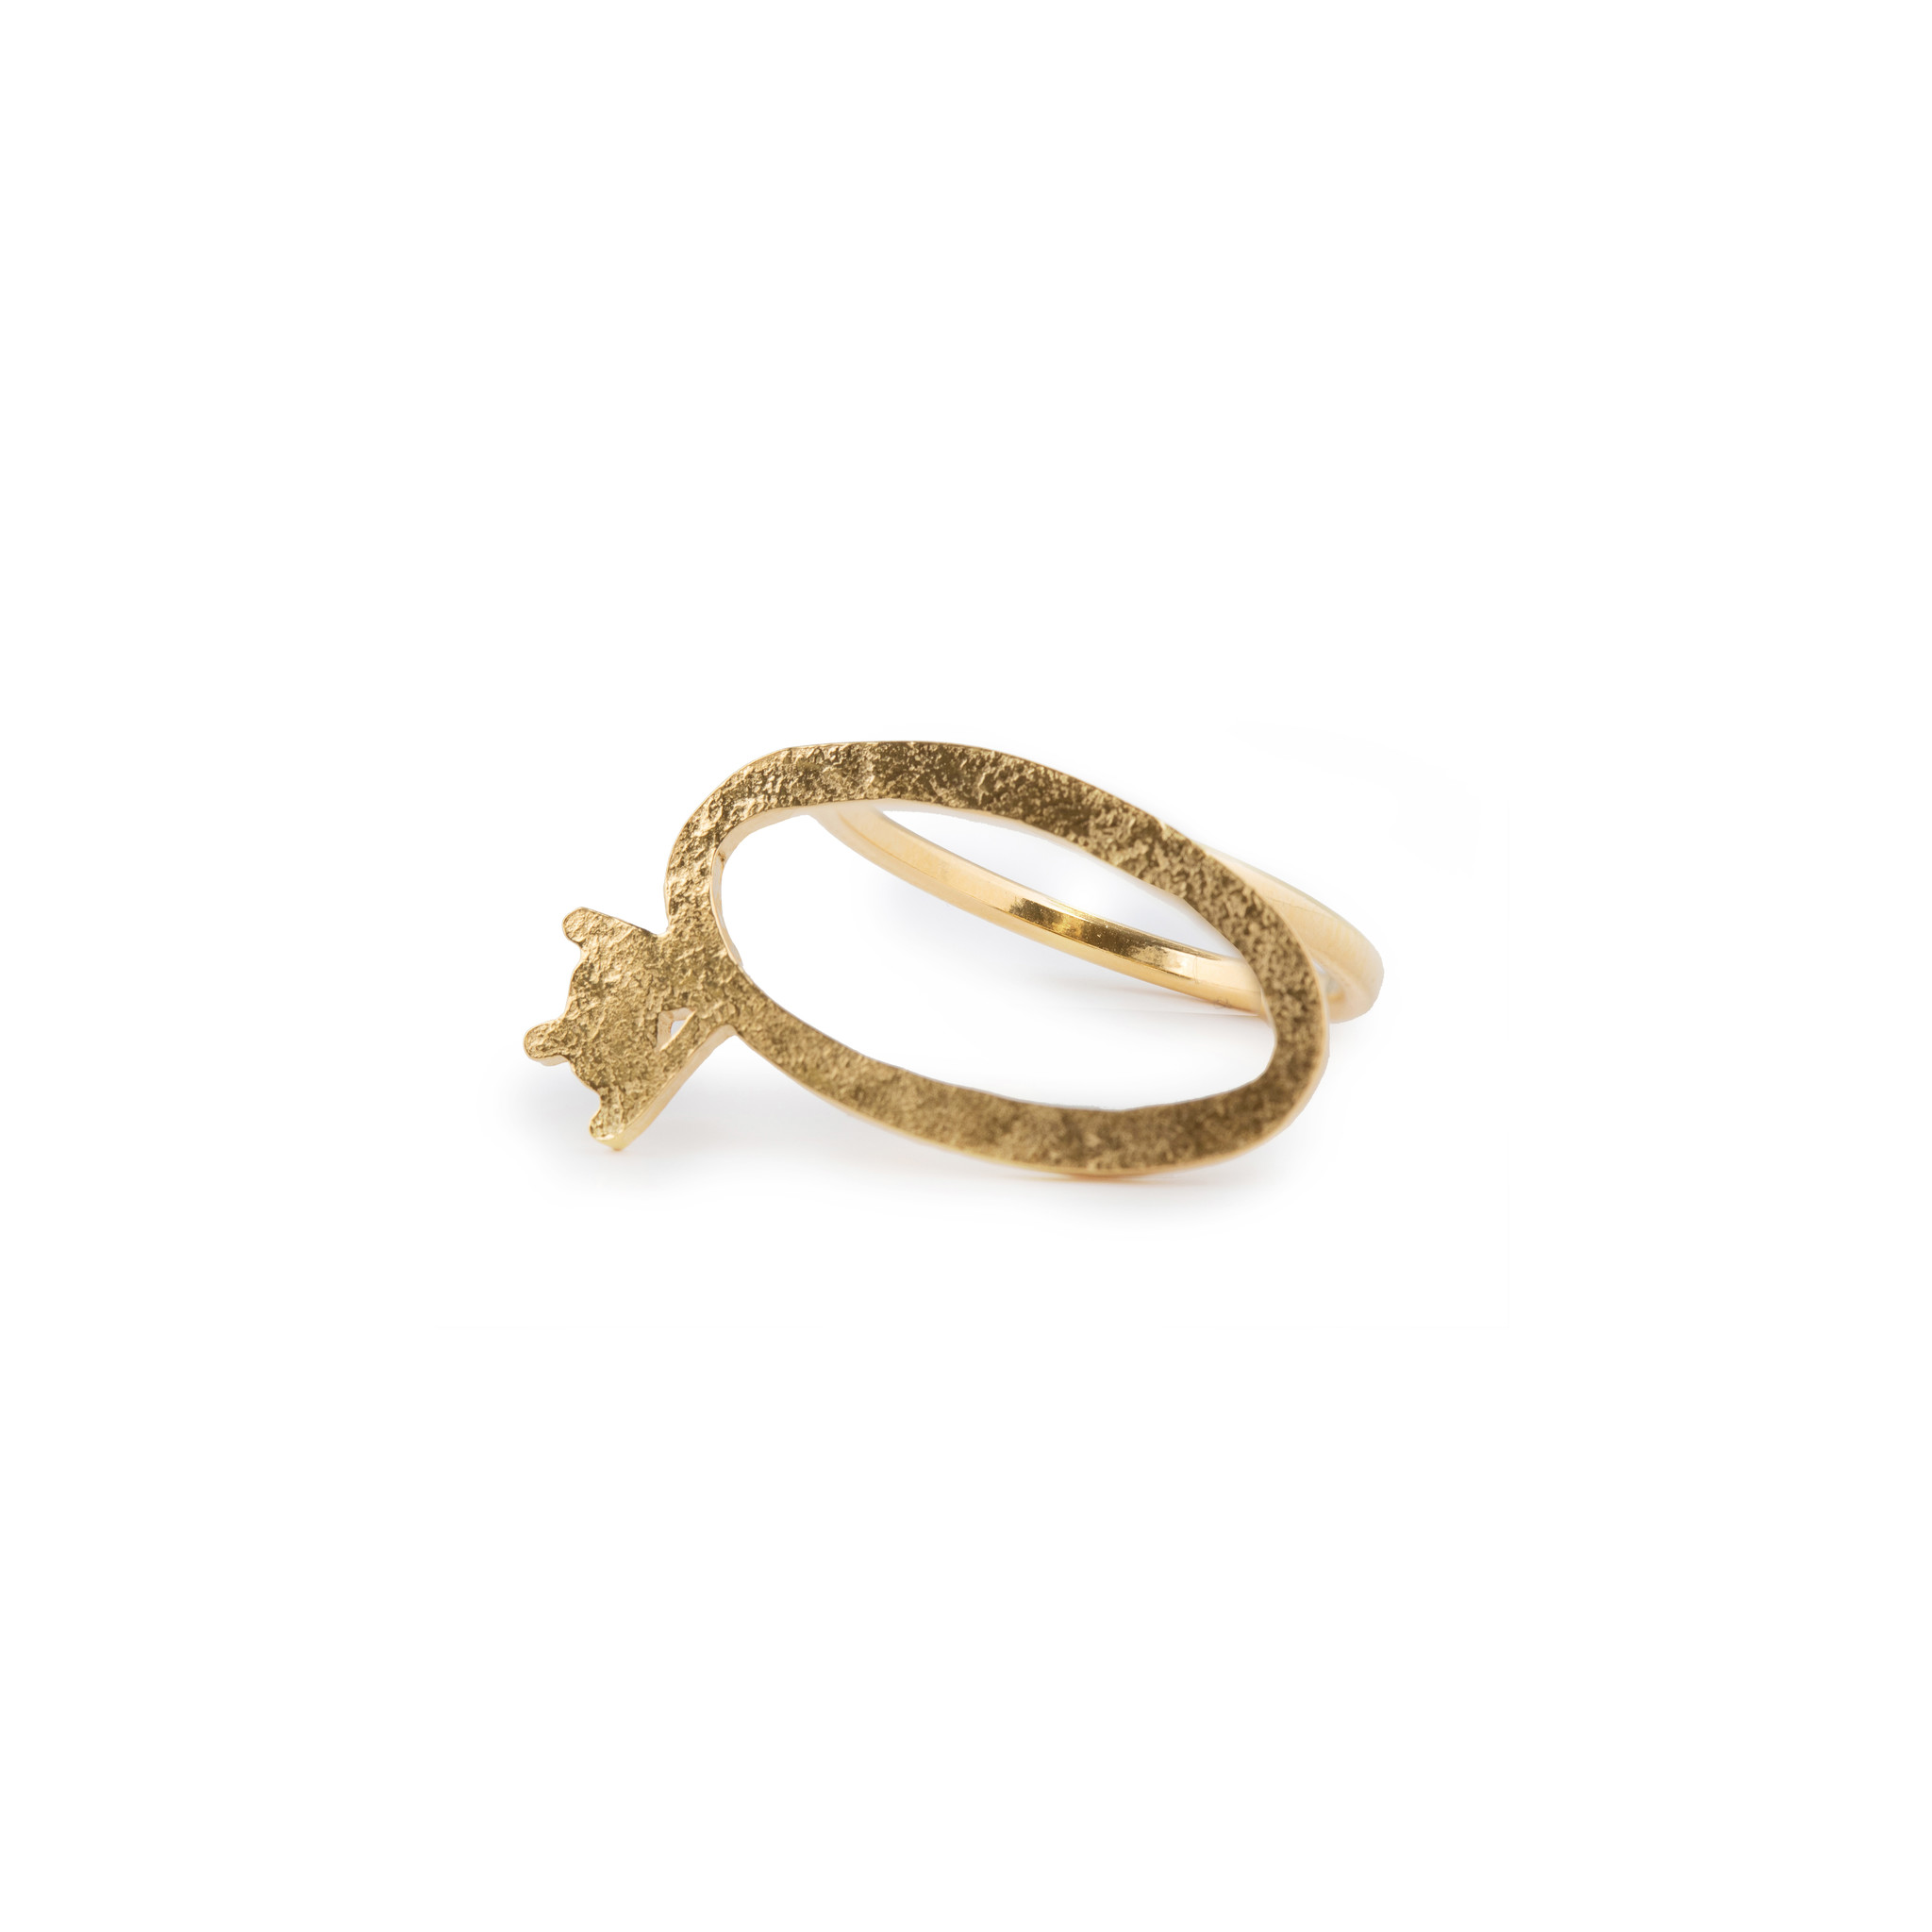 Ring on a ring